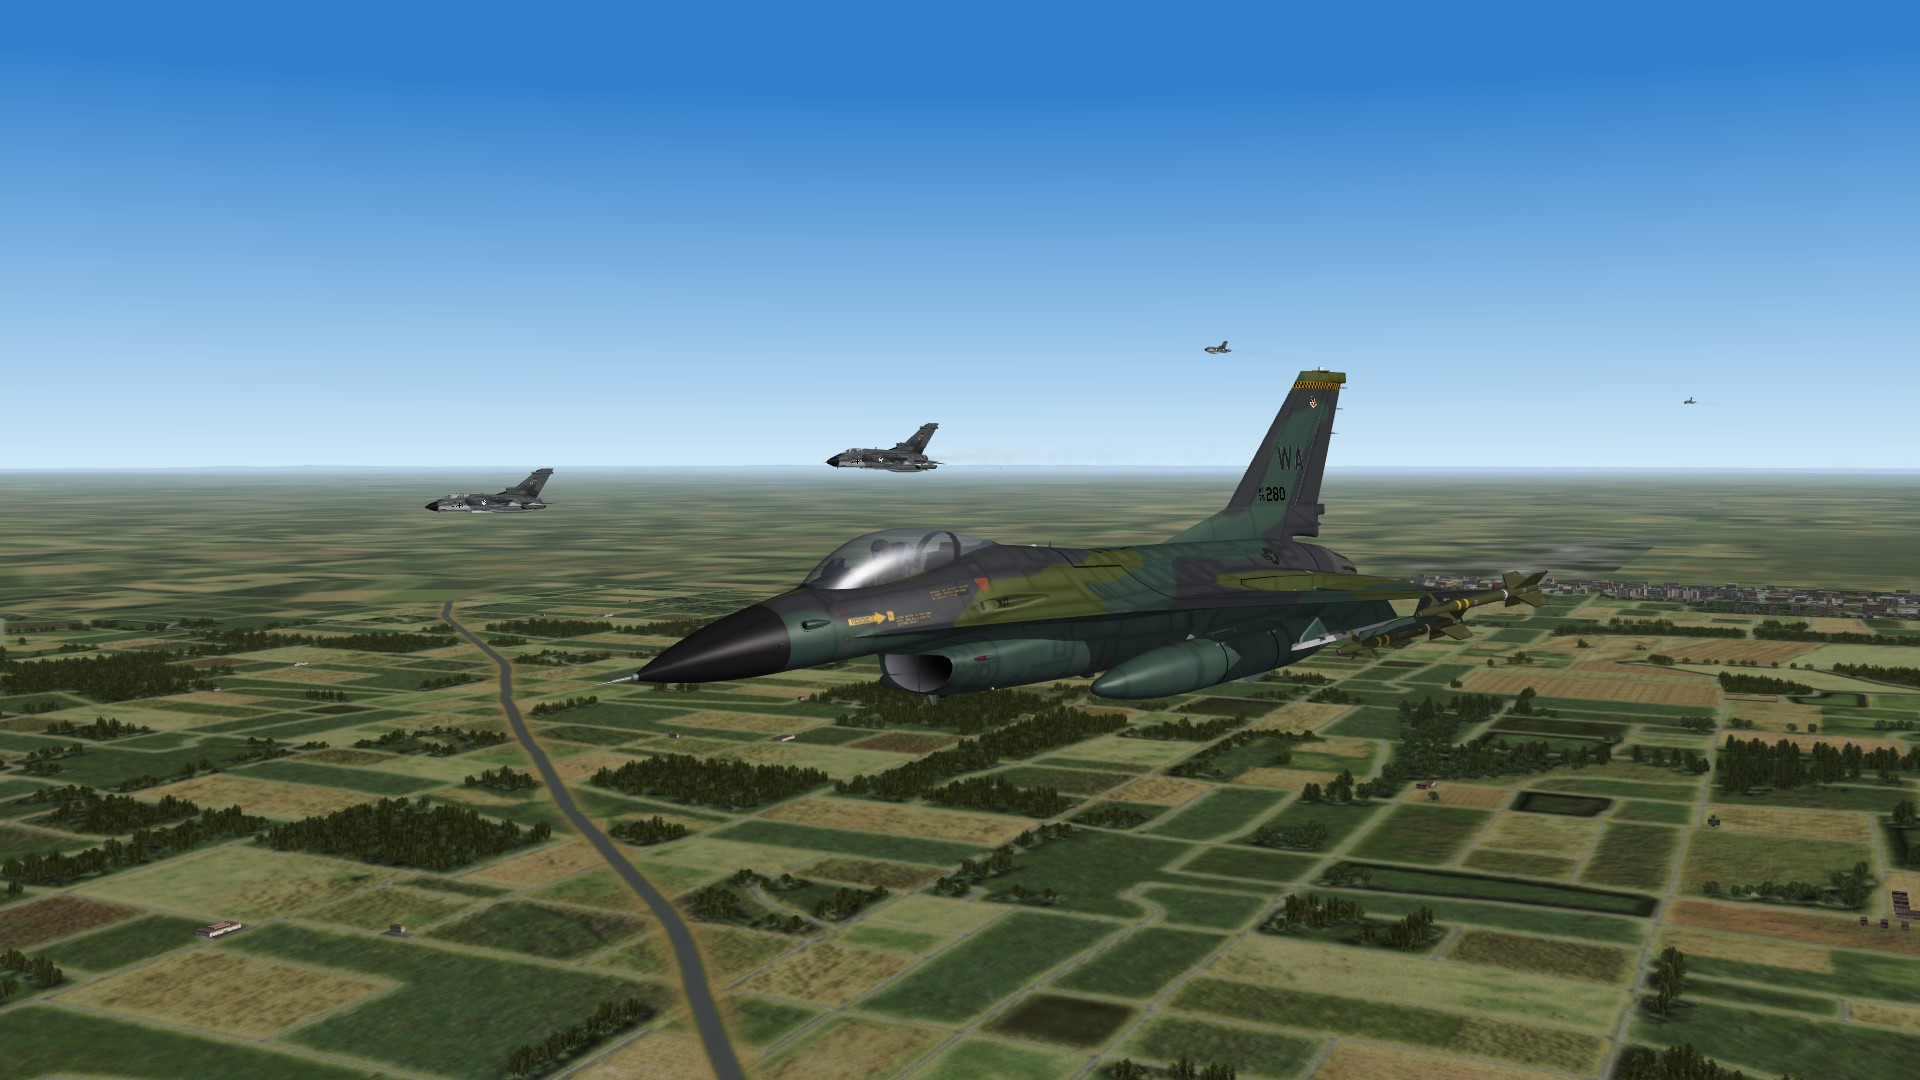 1986 A16 going home with German Tornados